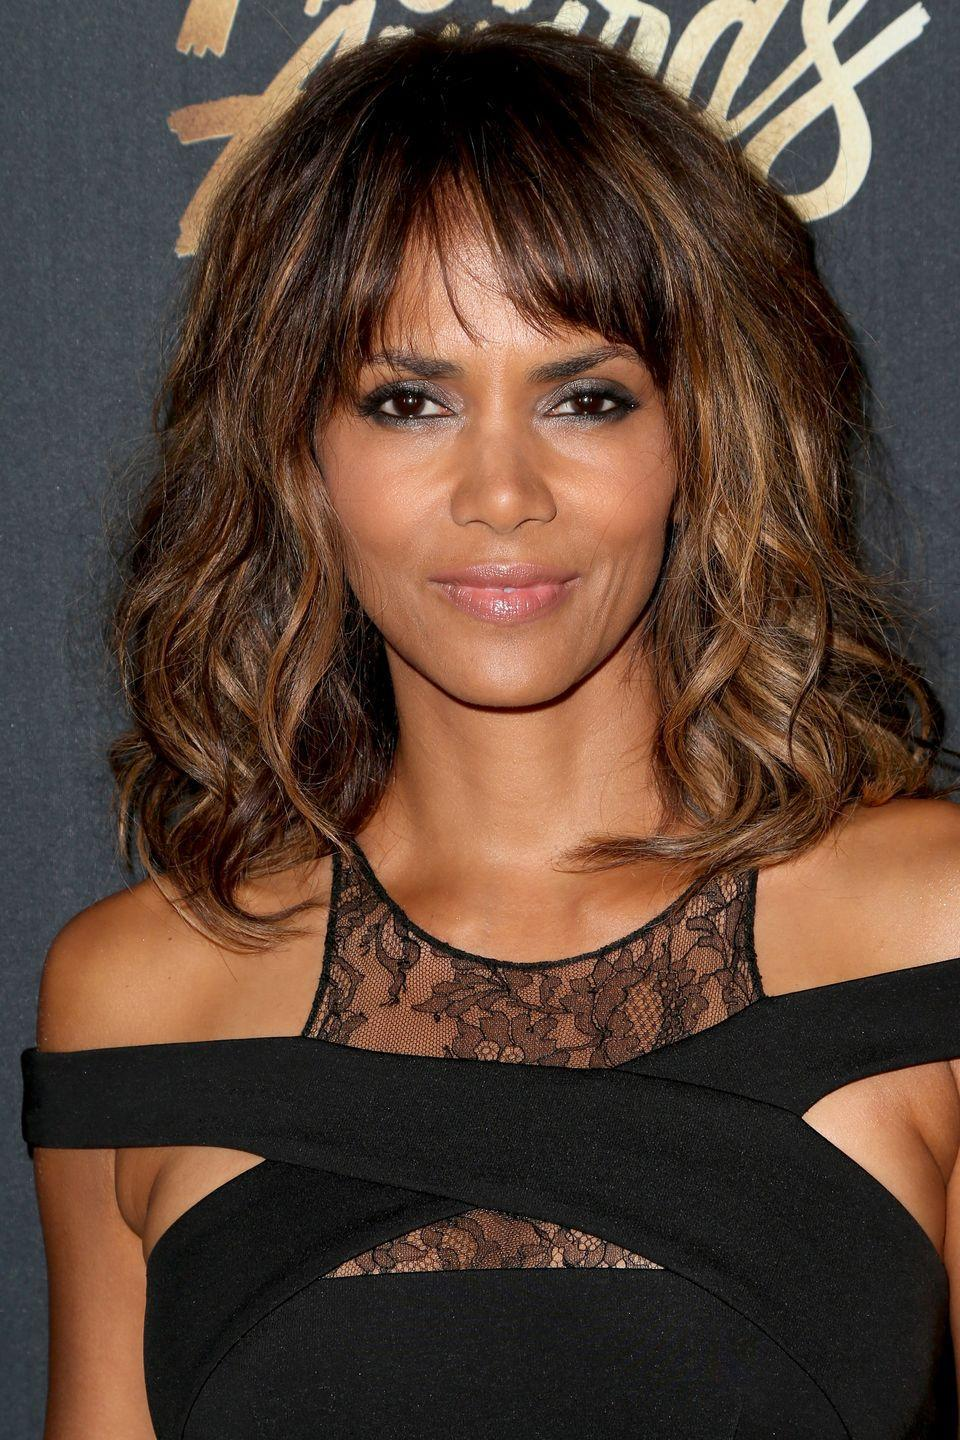 "<p>Berry hated the 2004 film she starred in. In 2005, the actress accepted an award on stage <a href=""http://www.mtv.com/news/1497569/halle-berry-slams-catwoman-at-razzie-awards/"" rel=""nofollow noopener"" target=""_blank"" data-ylk=""slk:stating,"" class=""link rapid-noclick-resp"">stating,</a>""I want to thank Warner Bros. for casting me in this piece-of-sh*t, god-awful movie.""</p>"